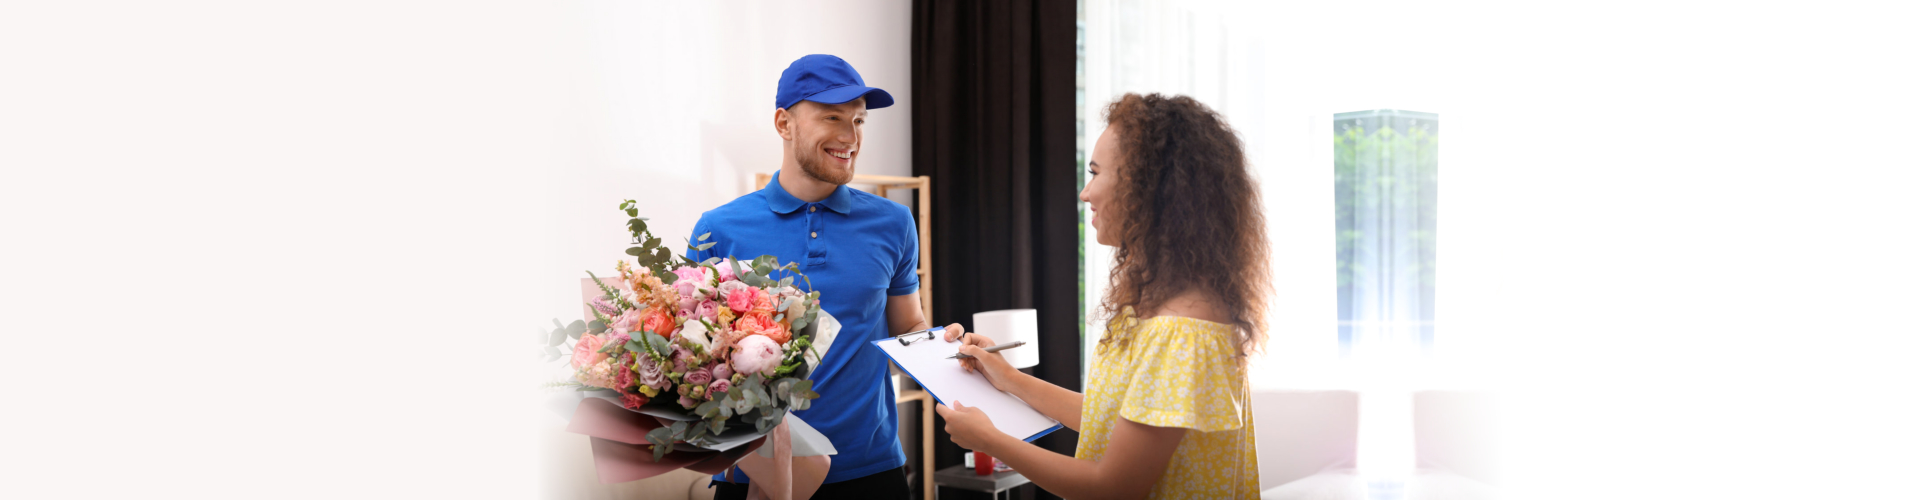 African-American woman receiving flower bouquet from delivery man